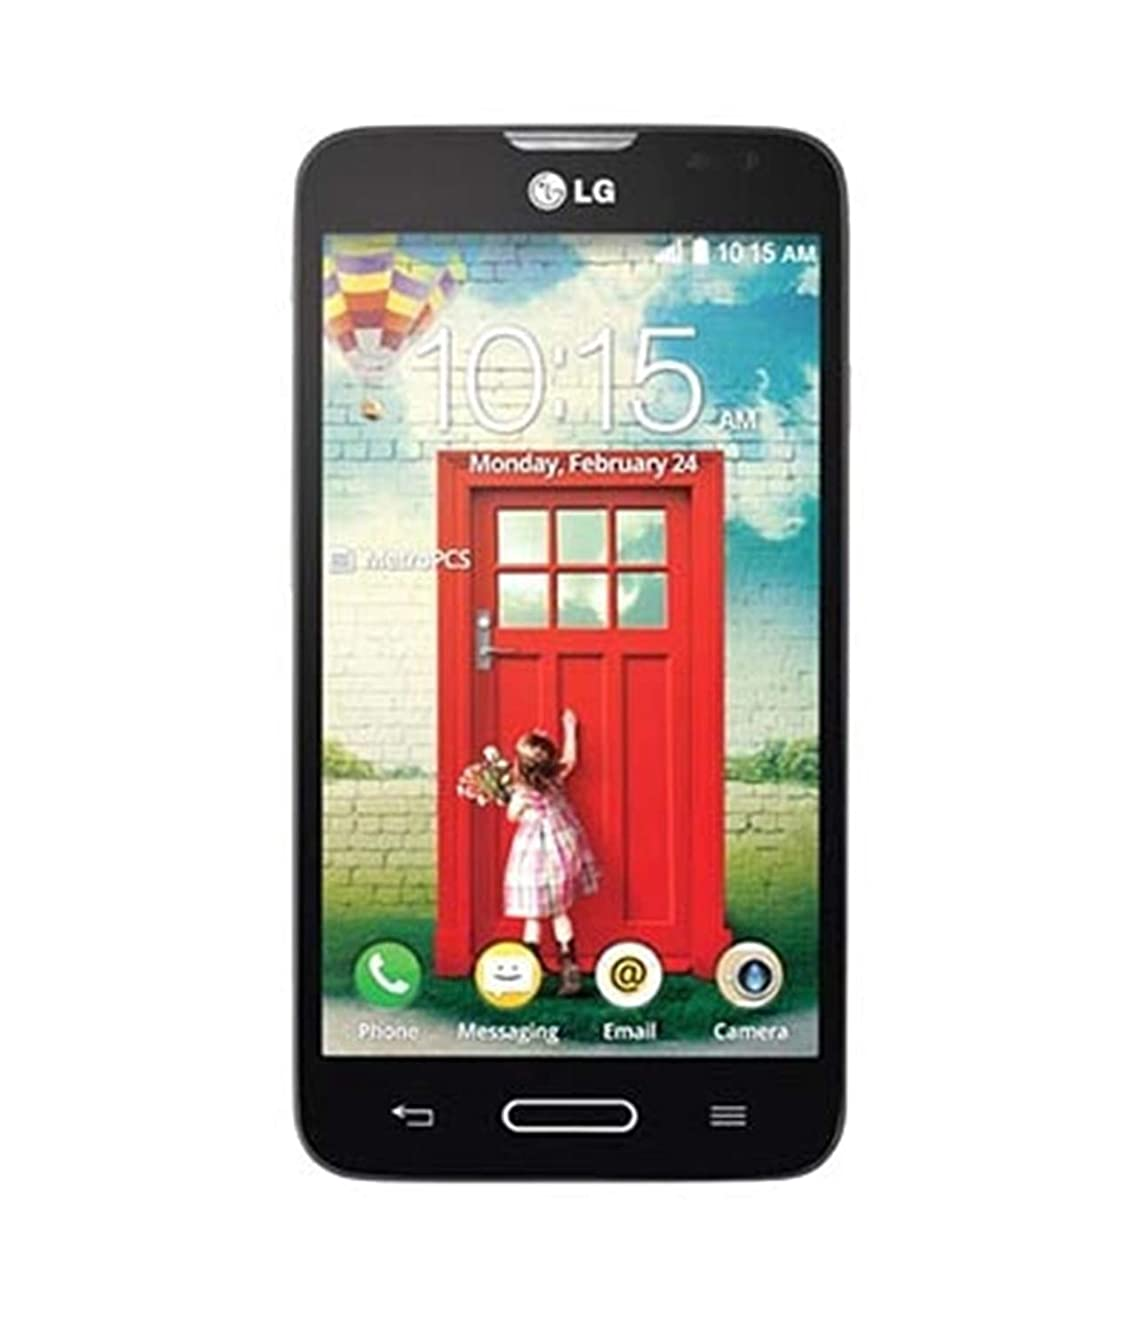 LG Optimus L70 (MS323) Metro PCS Smartphone